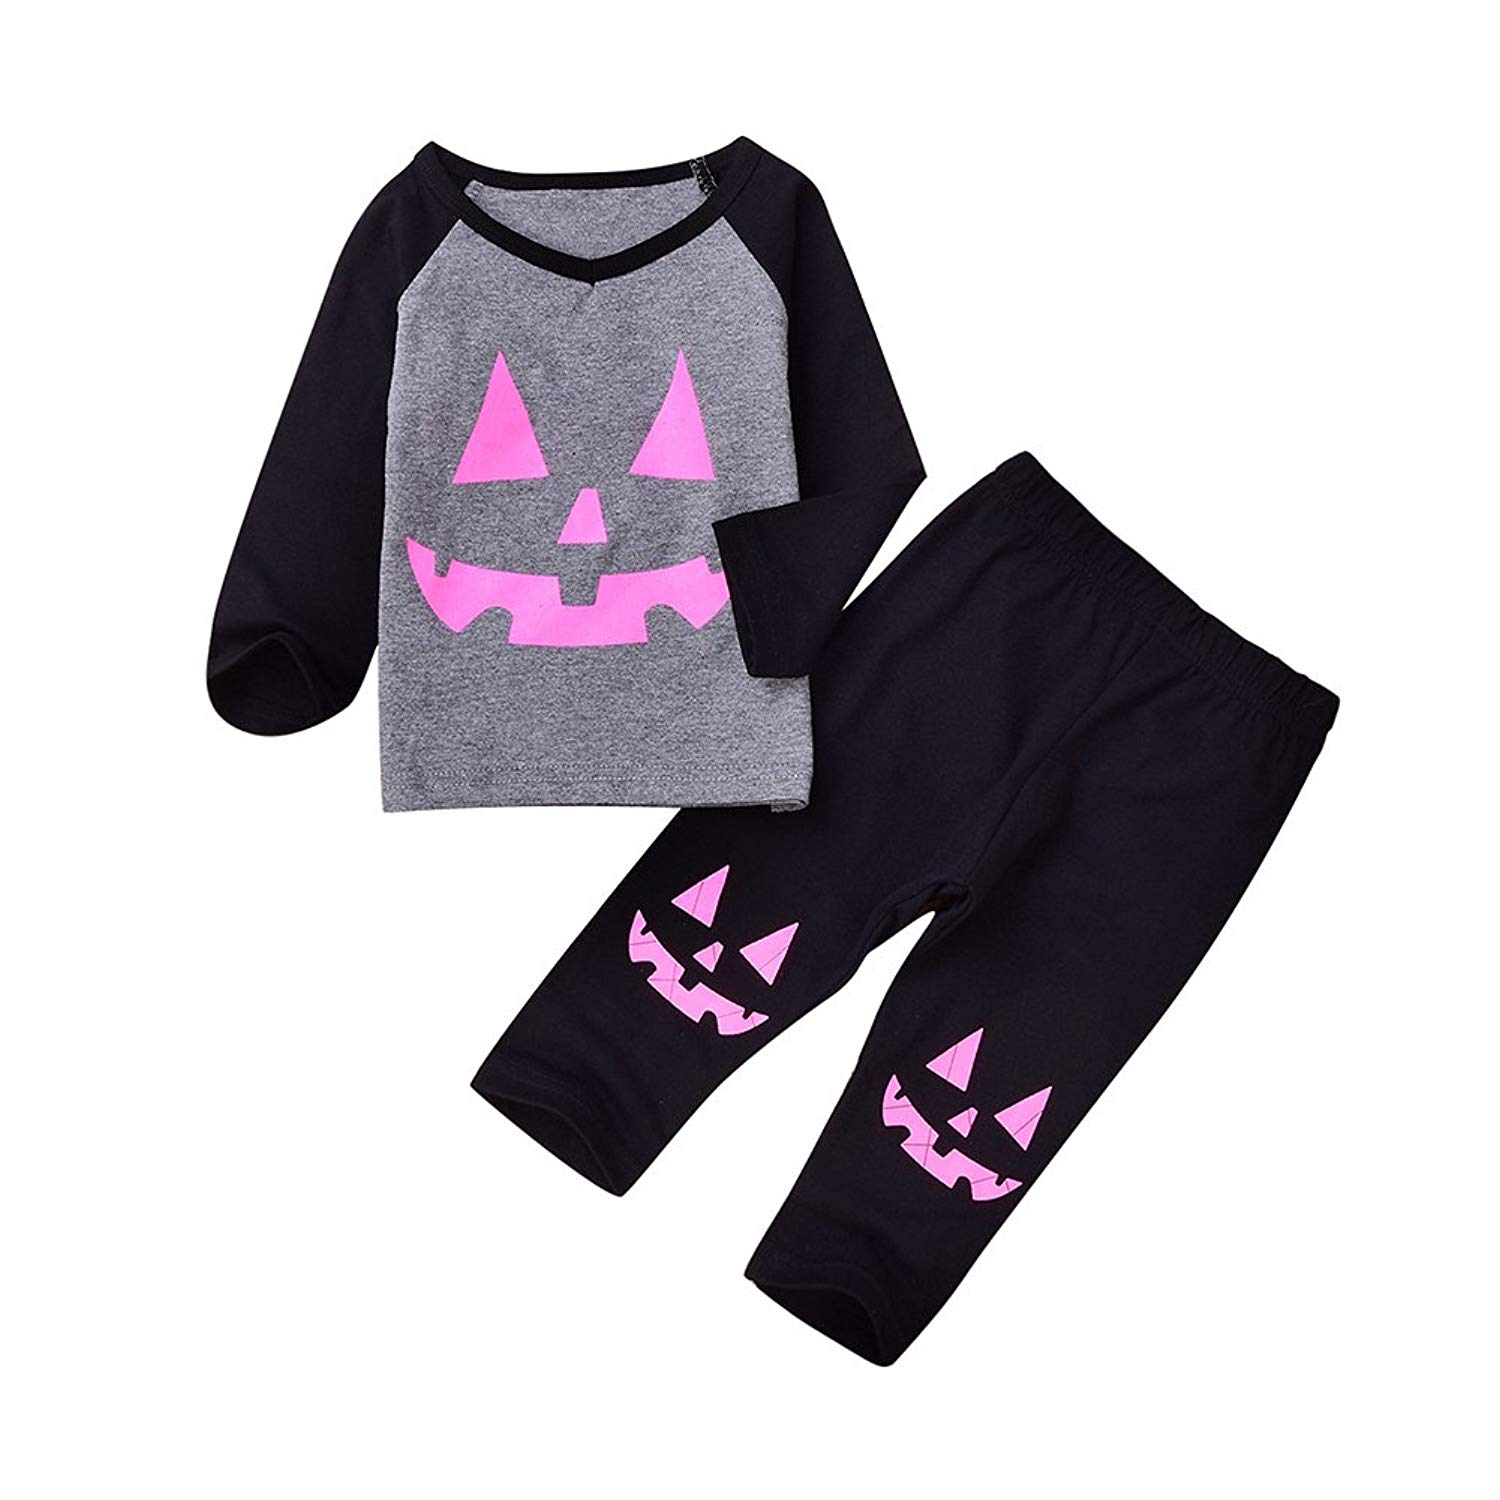 03da51ab52 Get Quotations · Aomige Kids Halloween Pajamas Children Sleepwear Christmas  Cute Infant Baby Girl Boy Clothes Set